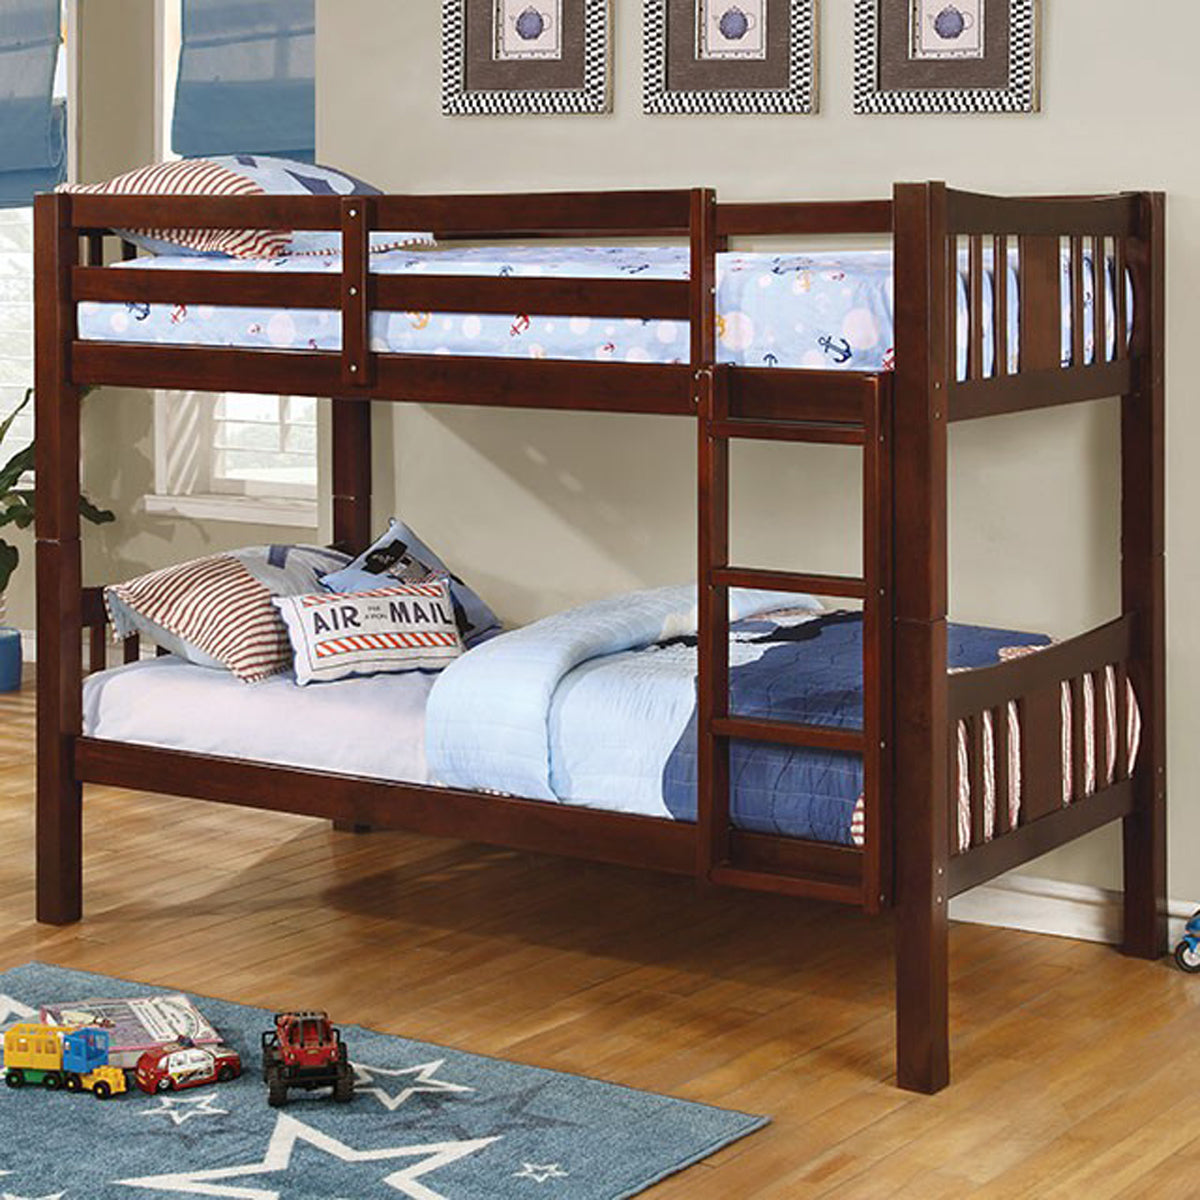 Cameron CM-BK929EX Transitional Dark Walnut Twin over Twin Bunk Bed